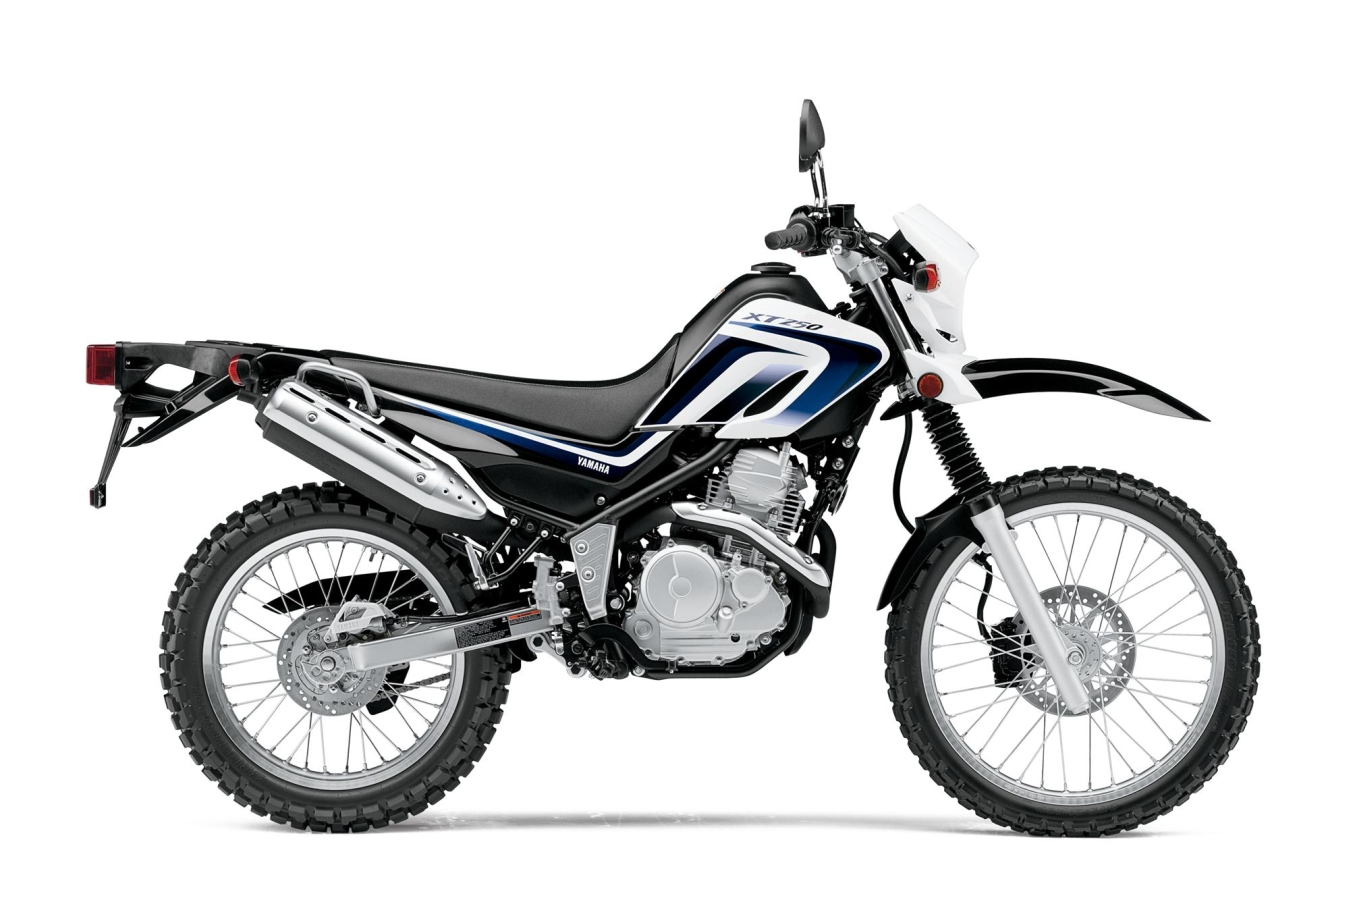 2013 yamaha xt250 finally gets fuel injection autoevolution. Black Bedroom Furniture Sets. Home Design Ideas